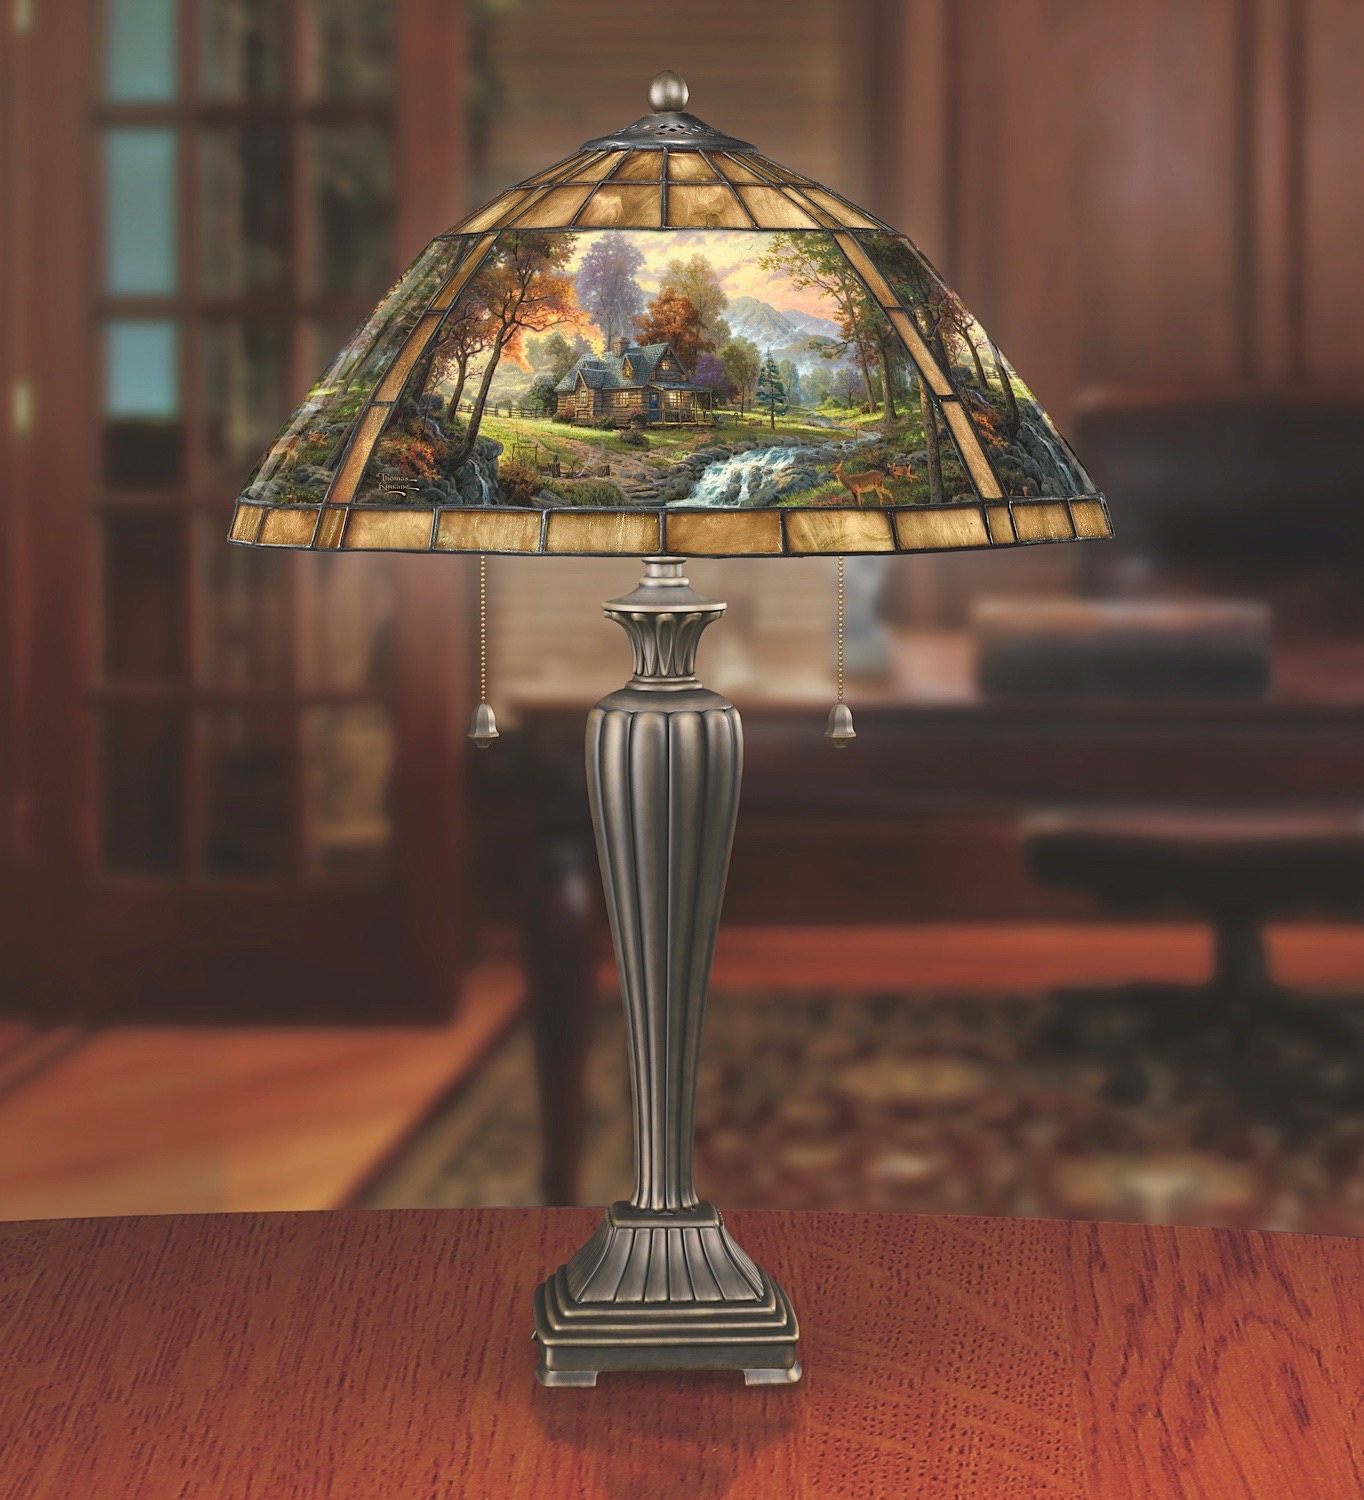 ... Stained Glass Table Lamp. Bradford Exchange Thomas Kinkade Mountain  Retreat Lamp